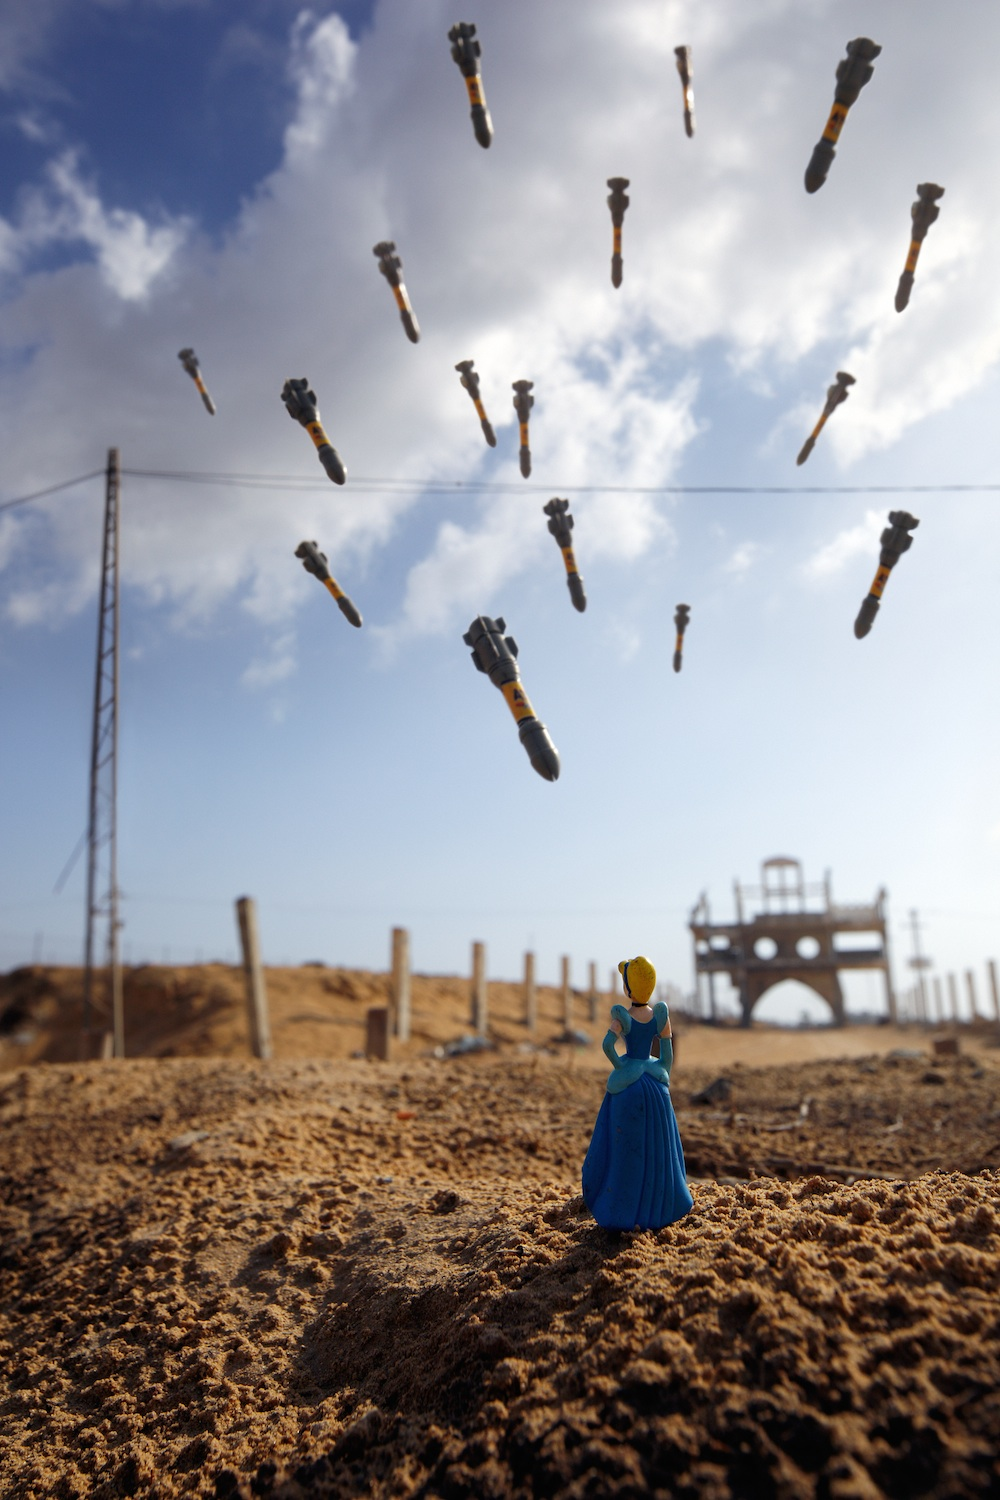 Brian McCarty, Gaza Cinderella, 2012, archival print, 51 x 34 inches, courtesy the artist. © Brian McCarty.